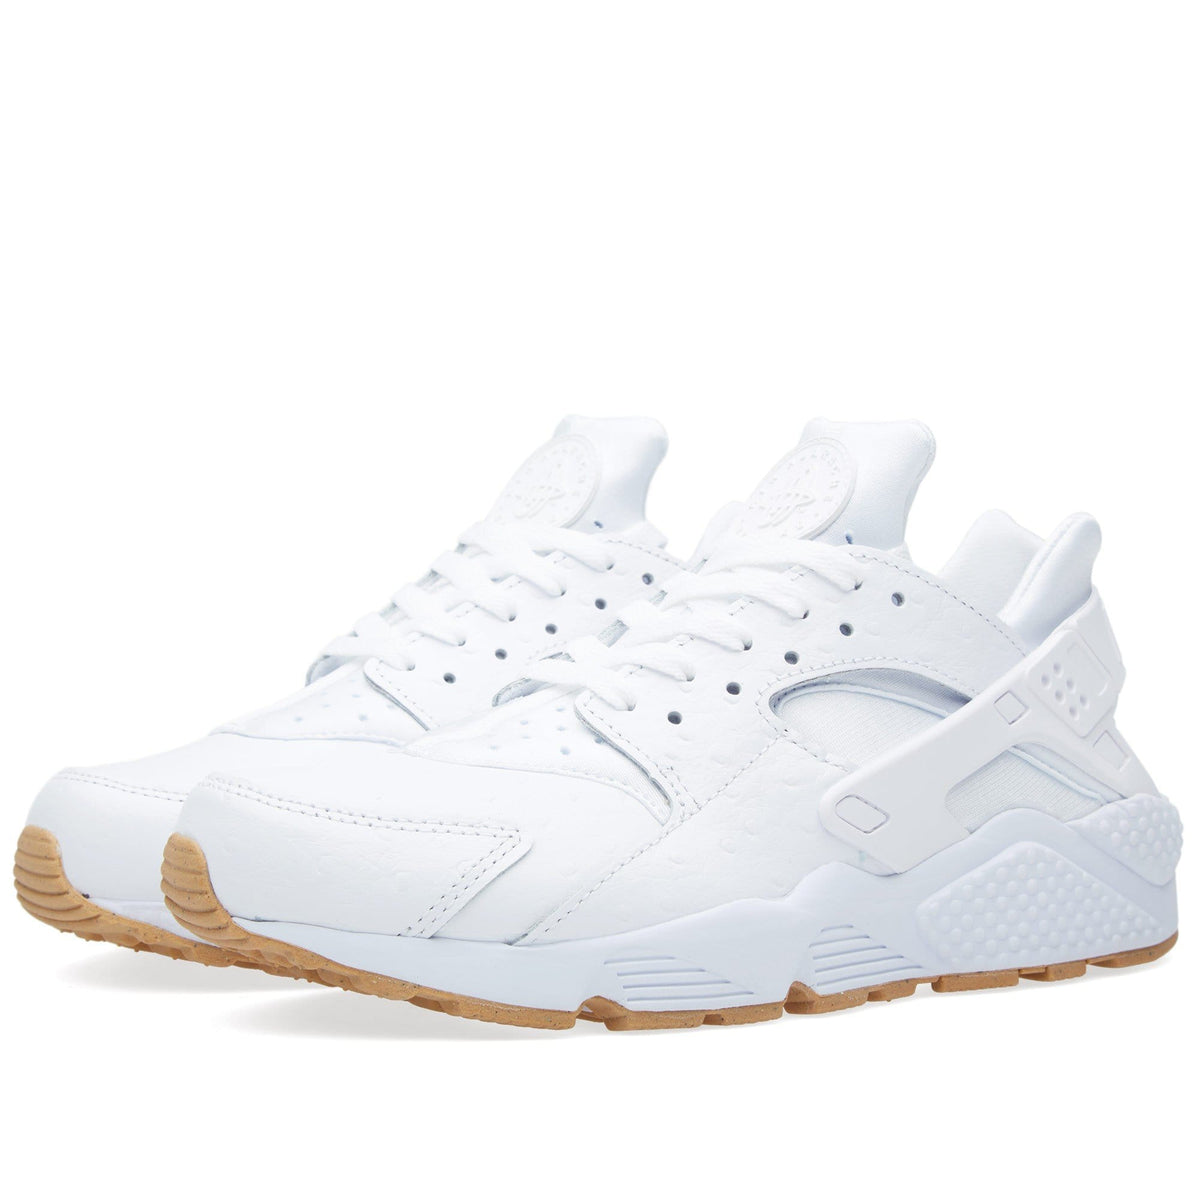 NIKE WHITE OSTRICH GUM PACK 1 JUN 2015